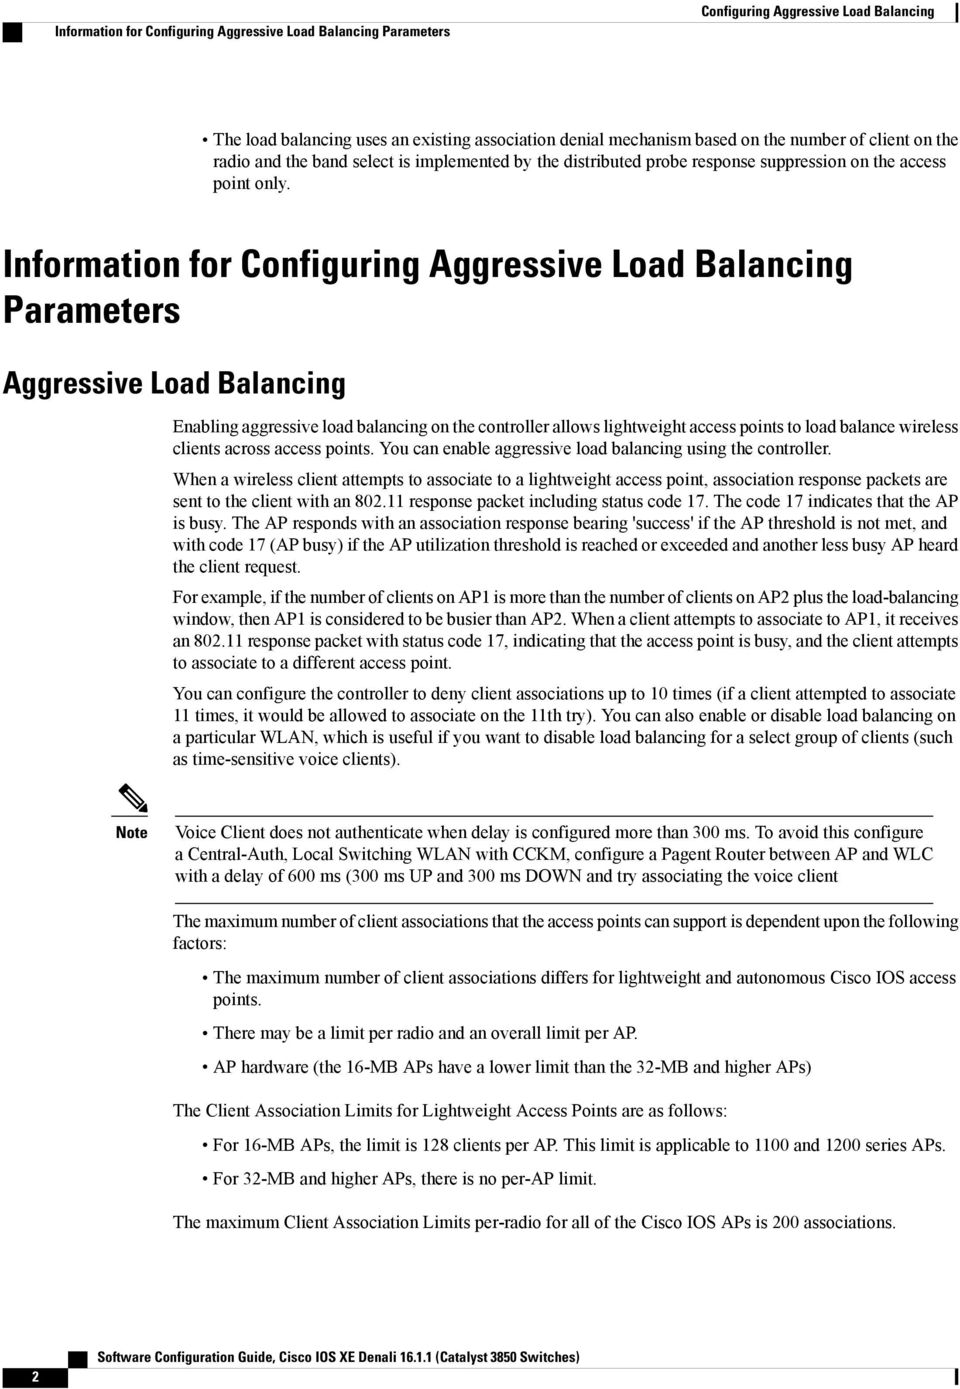 Information for Parameters Aggressive Load Balancing Enabling aggressive load balancing on the controller allows lightweight access points to load balance wireless clients across access points.